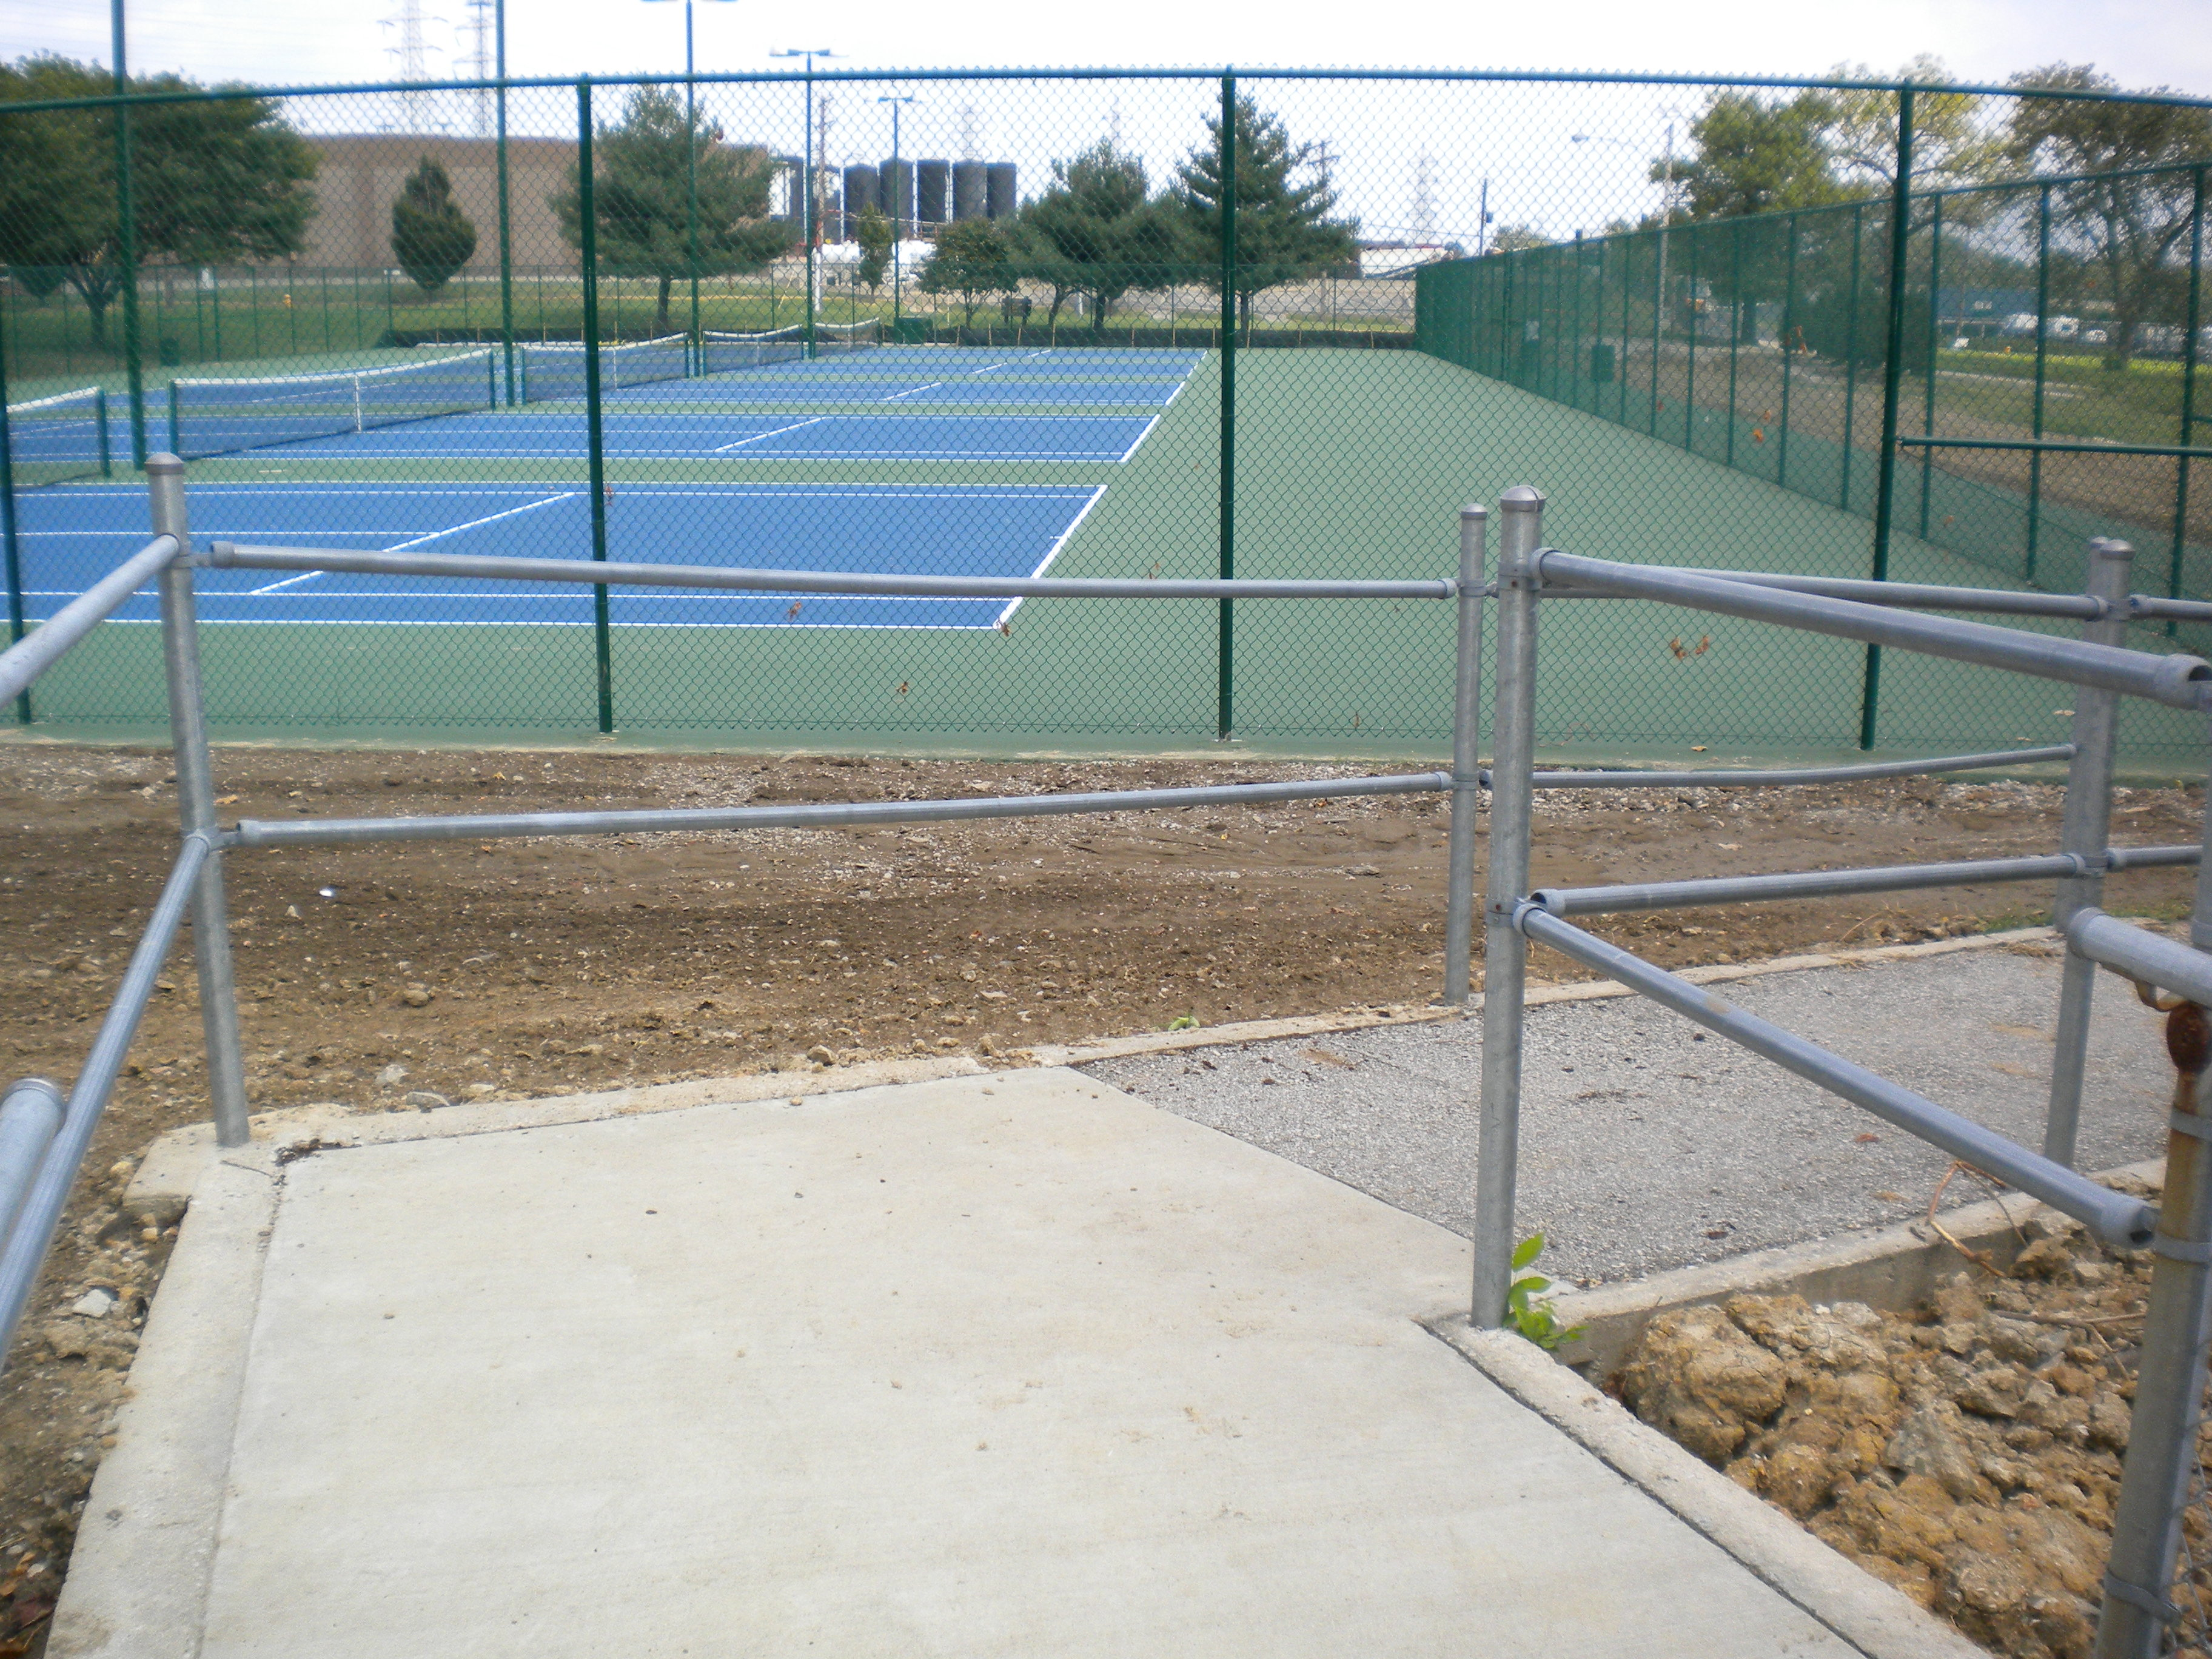 Paved path overlooking the tennis courts